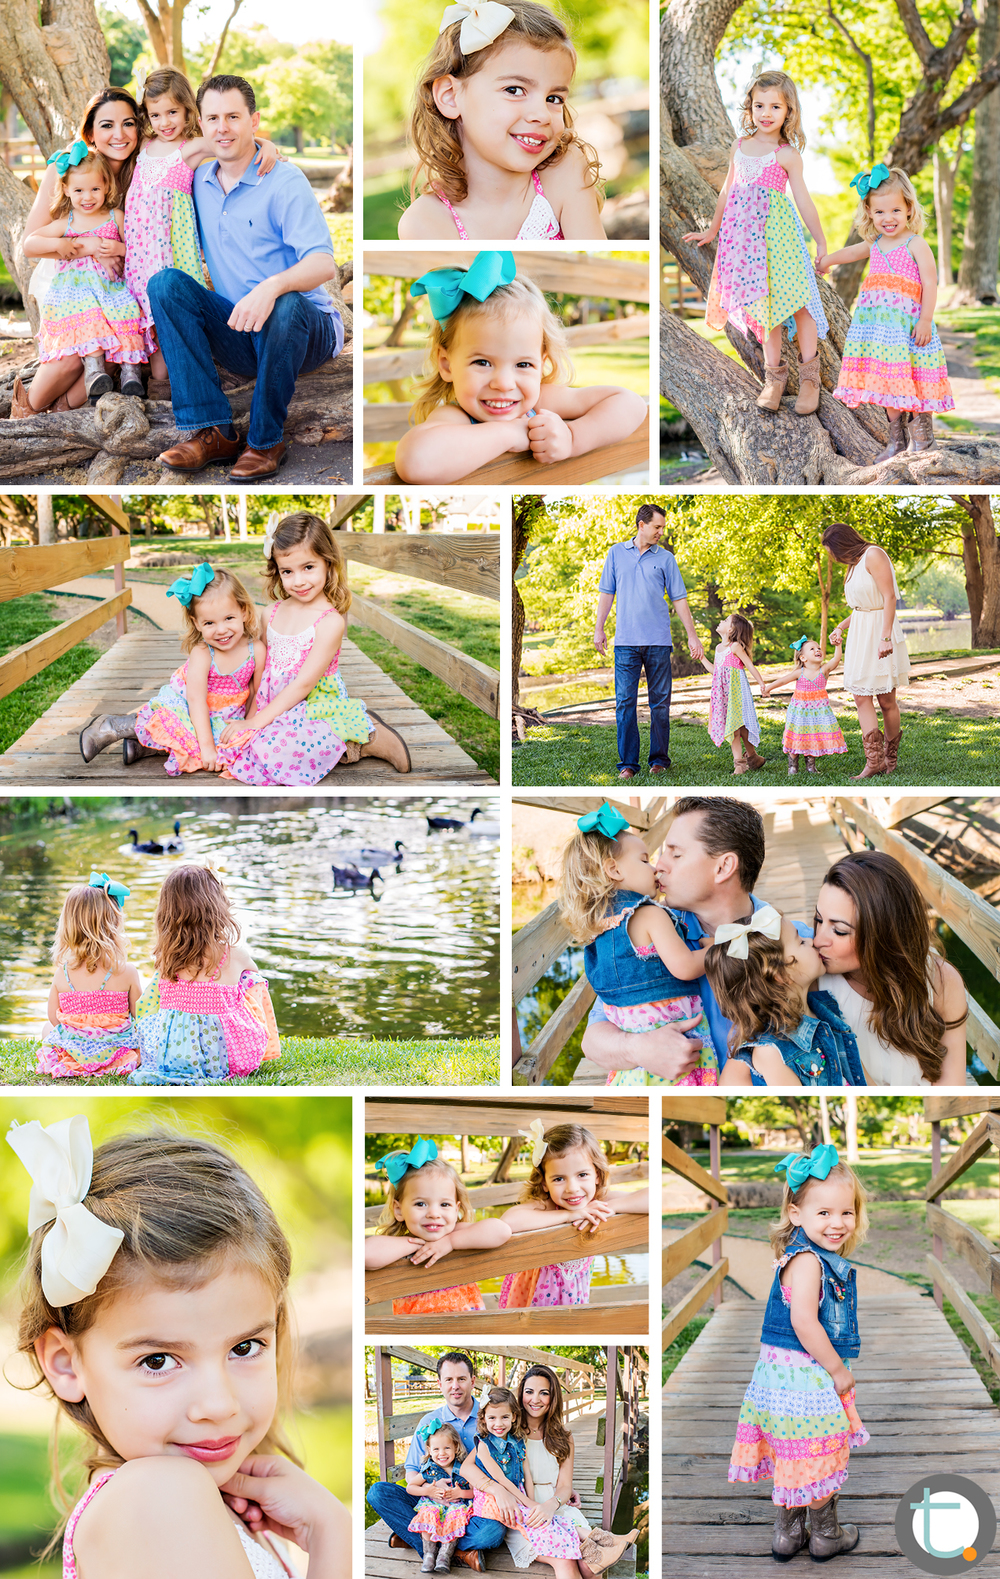 park_dallas_pond_ducks_girls_kids_family_portrait_morning_sunlight_tracyallynphotography